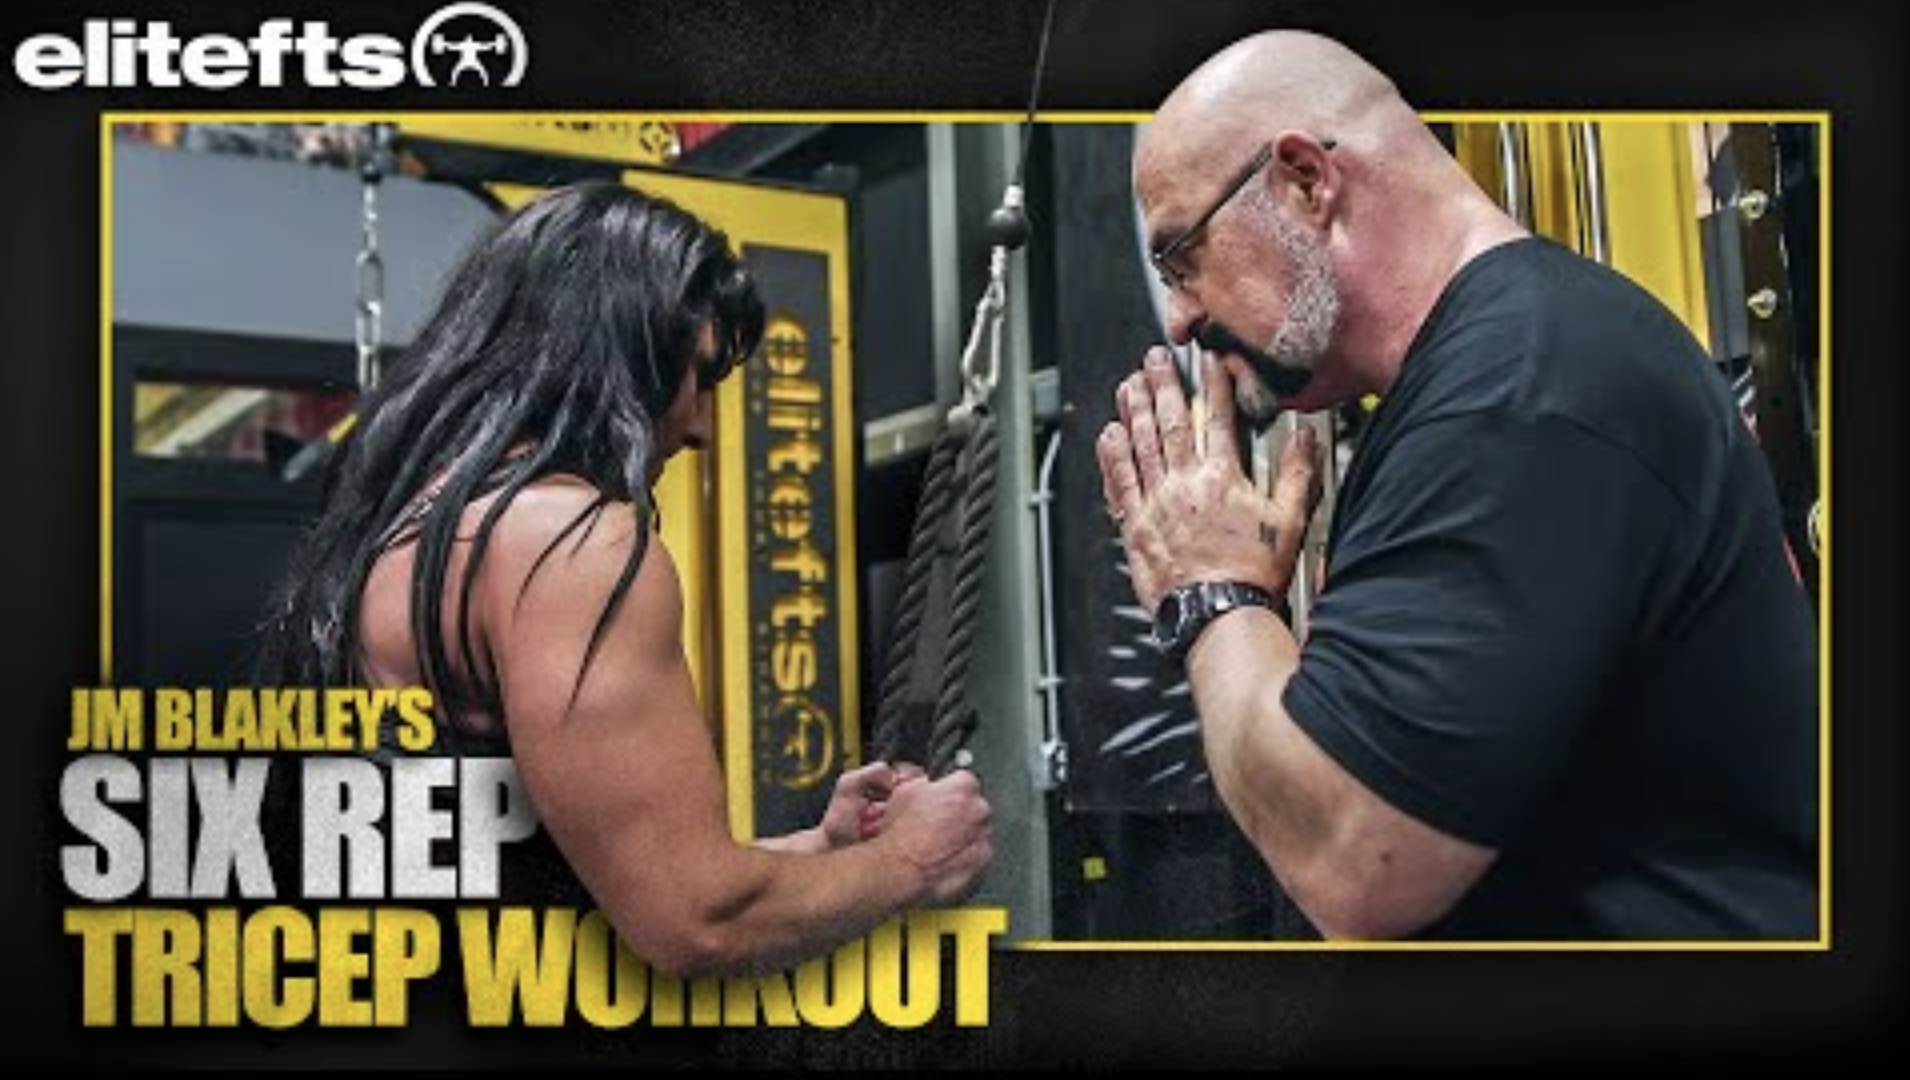 WATCH: JM Blakley's Ultimate 6-Rep Triceps Workout